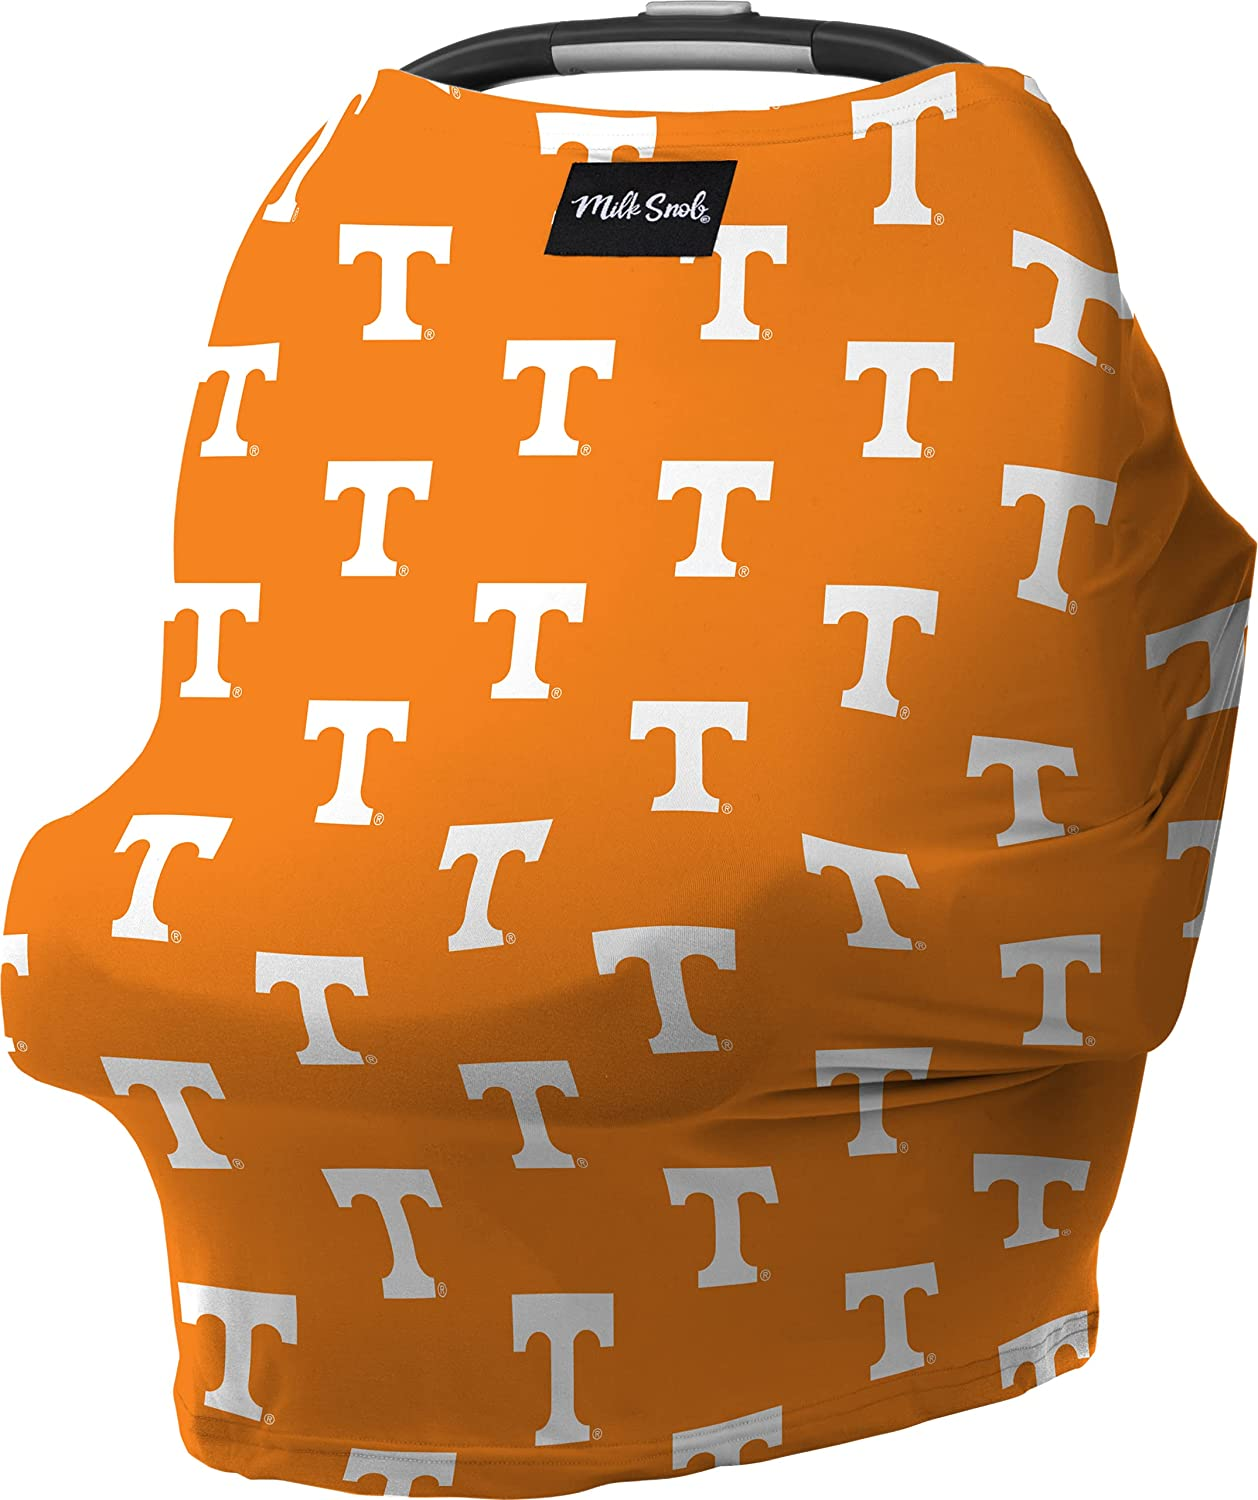 Milk Snob ORIGINAL 5-in-1 Cover Texas A&M Collegiate Collection, Privacy for Breastfeeding, Baby Car Seat, Carrier, Stroller, High Chair, Shopping Cart, Lounger Canopy, Newborn Essentials, Nursing Top